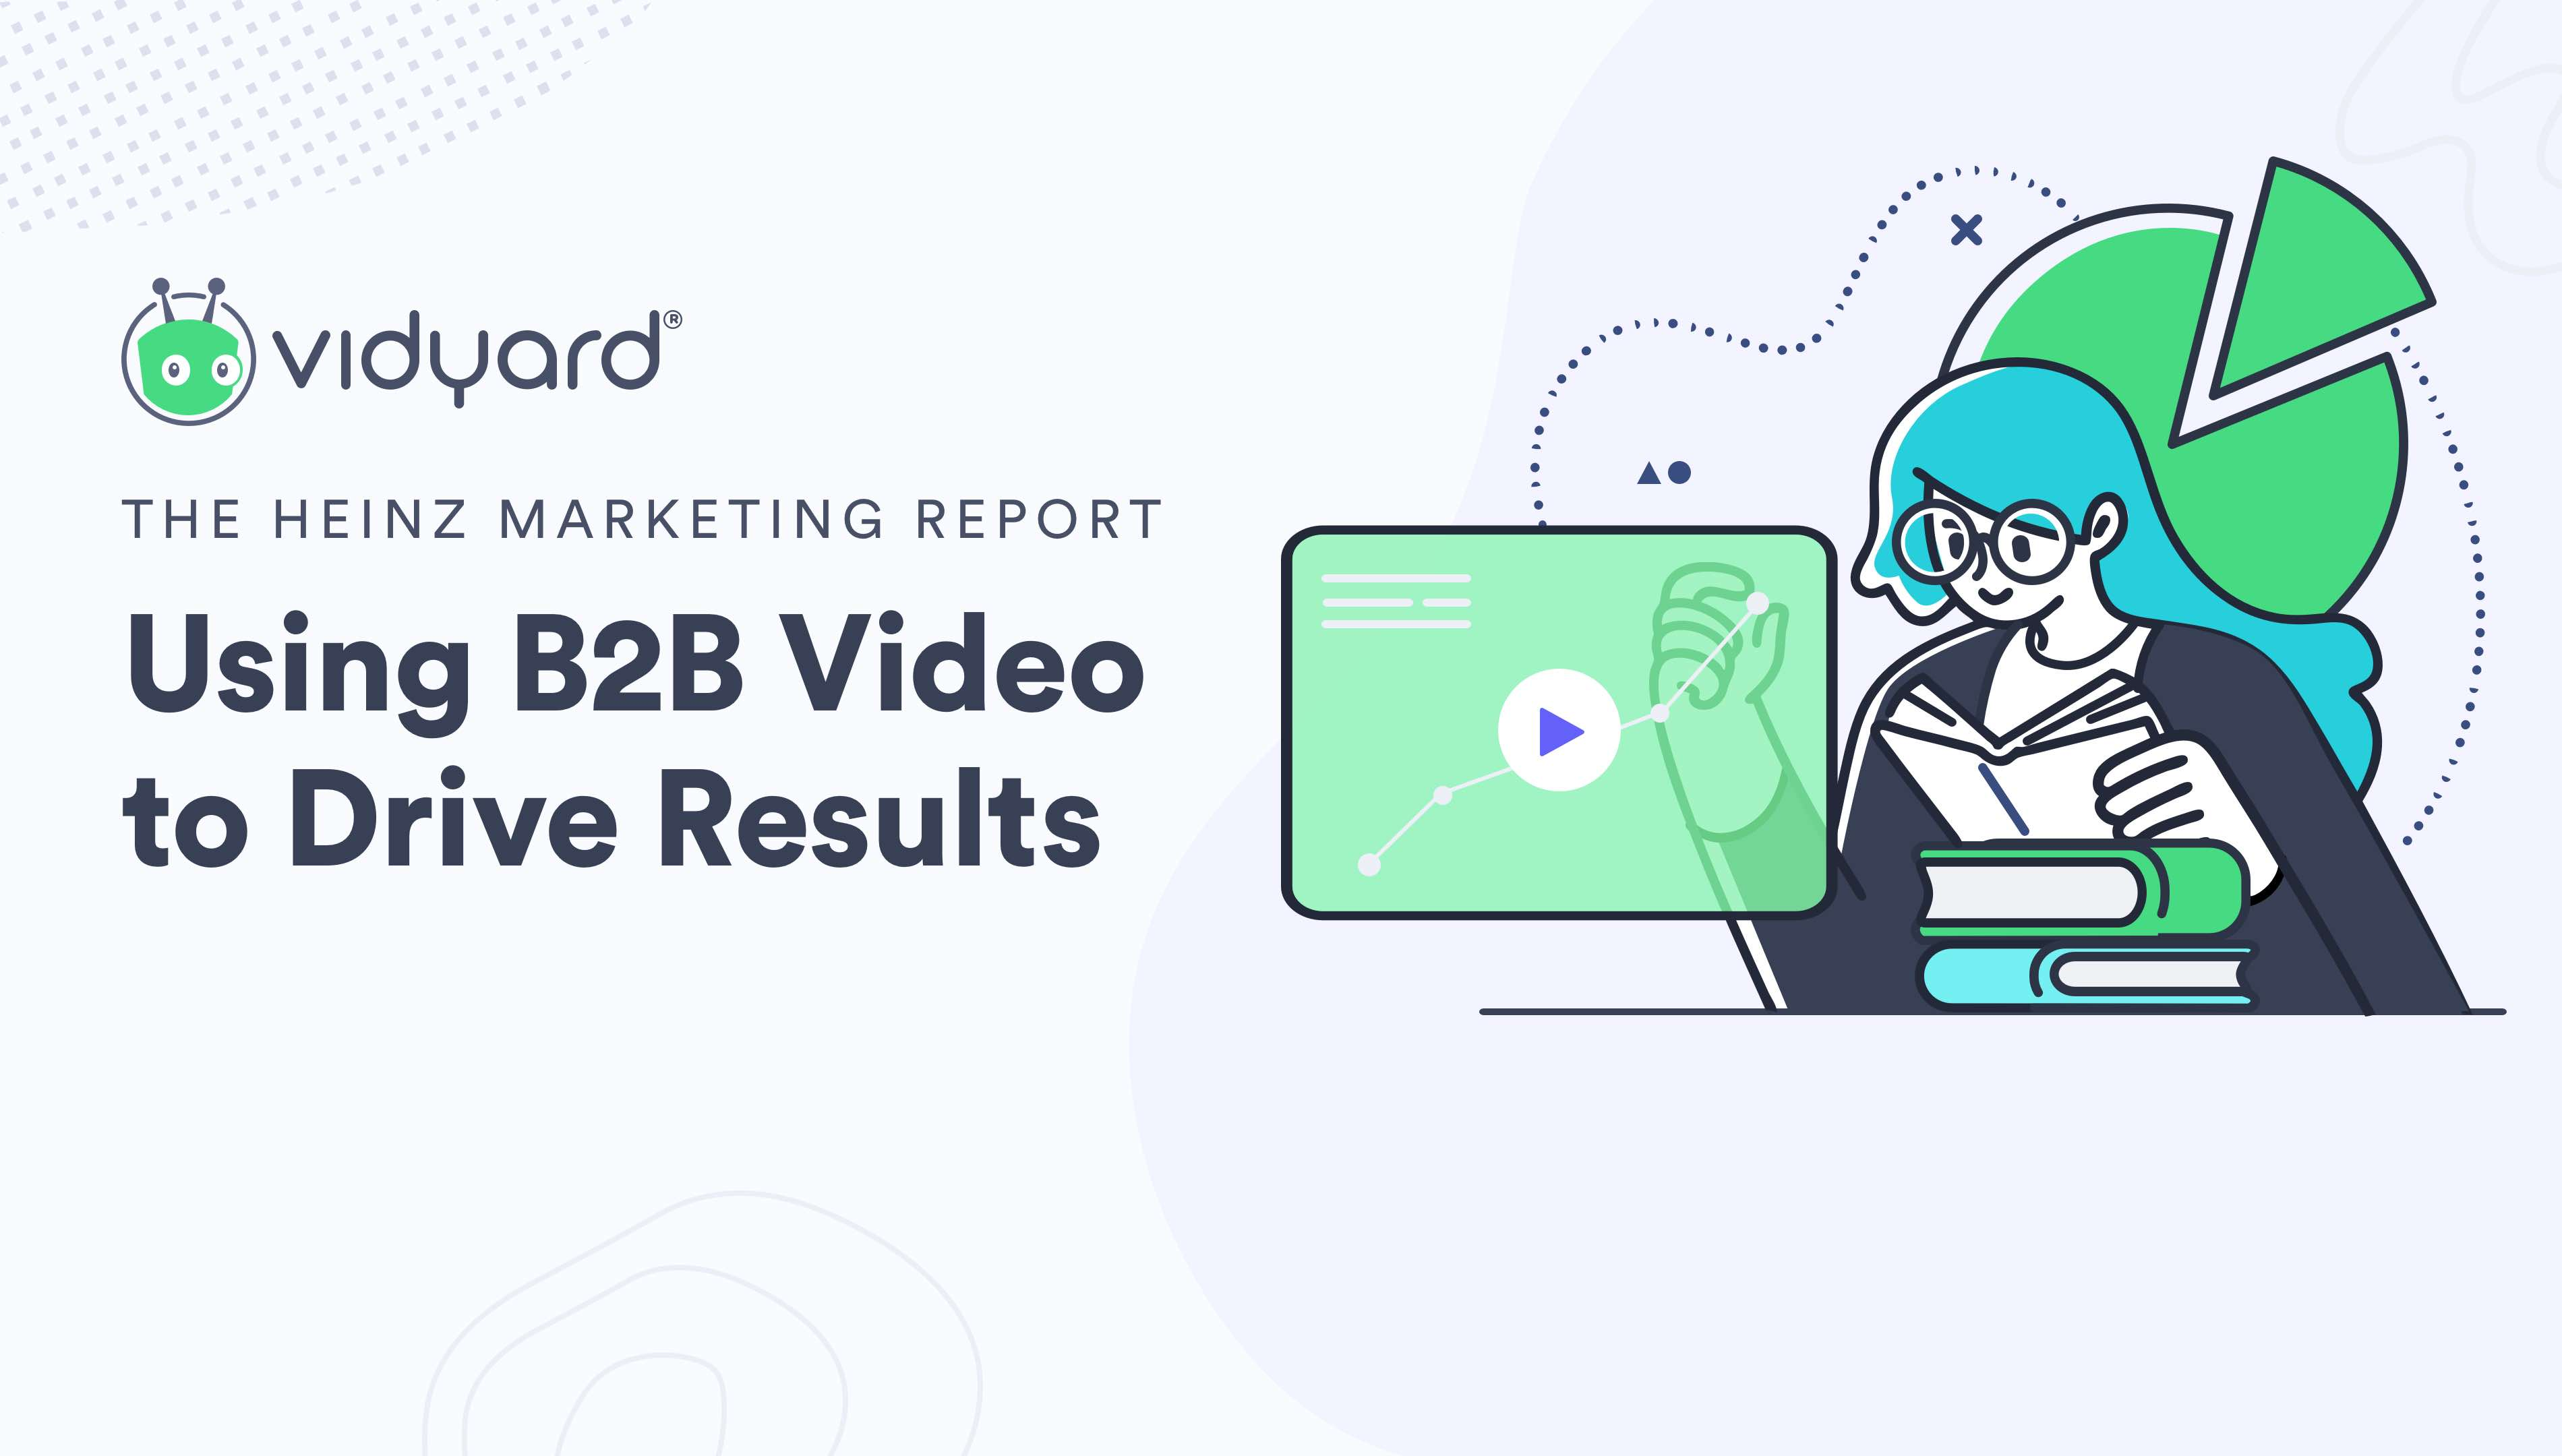 Sales and Marketing Leaders Increase Video Investments Even Though 80% Not Confident in Measuring its Performance